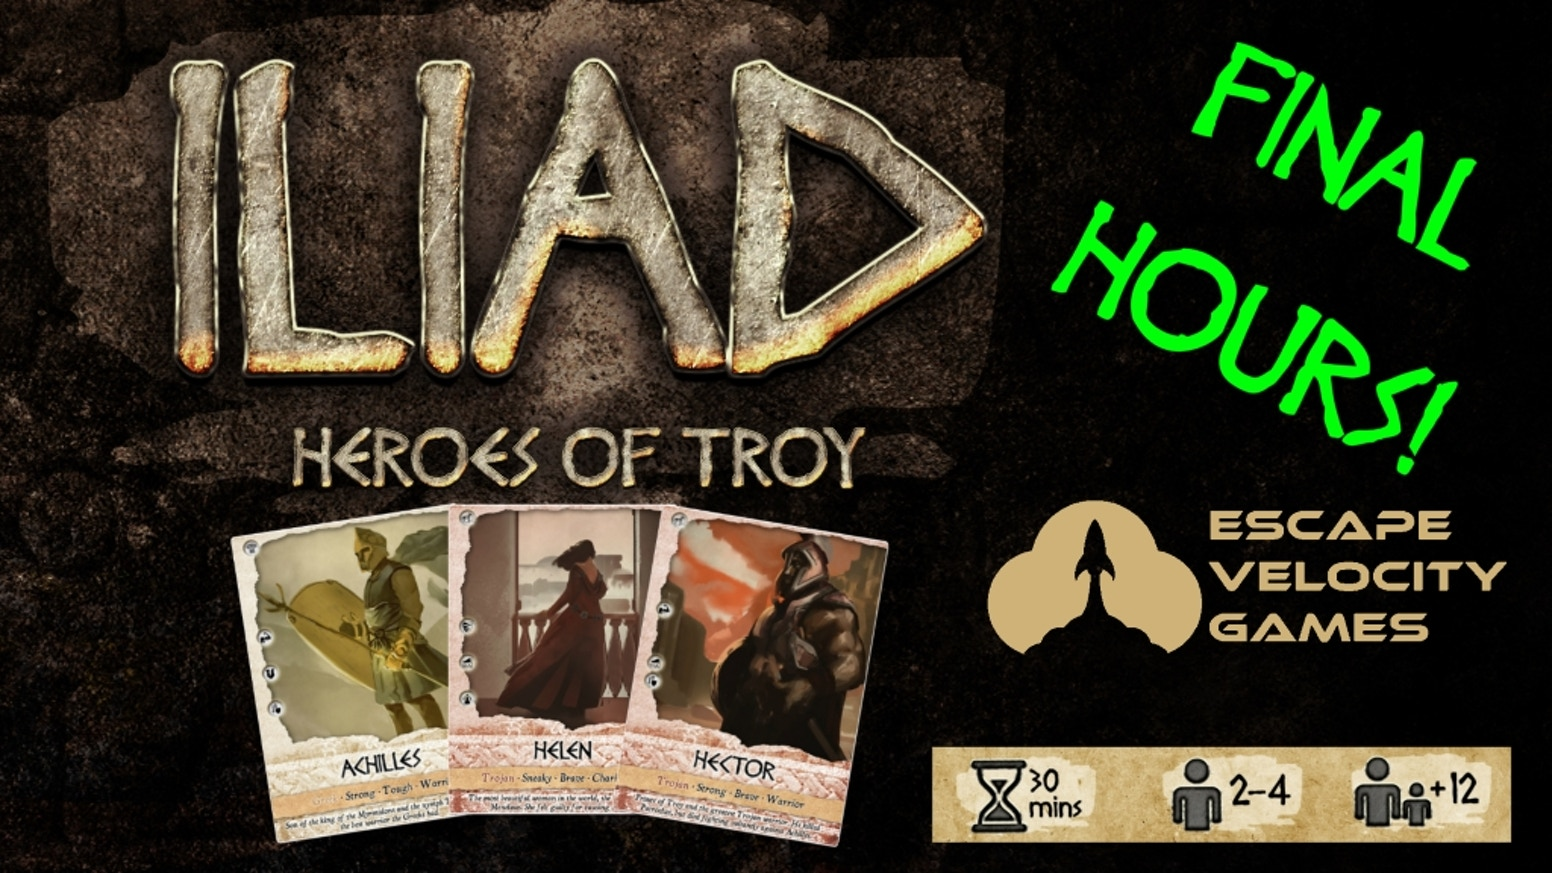 Iliad: Heroes of Troy is a simple, yet surprisingly deep, card game based on the epic poem by Homer! For 2-4 players in about 30 mins.